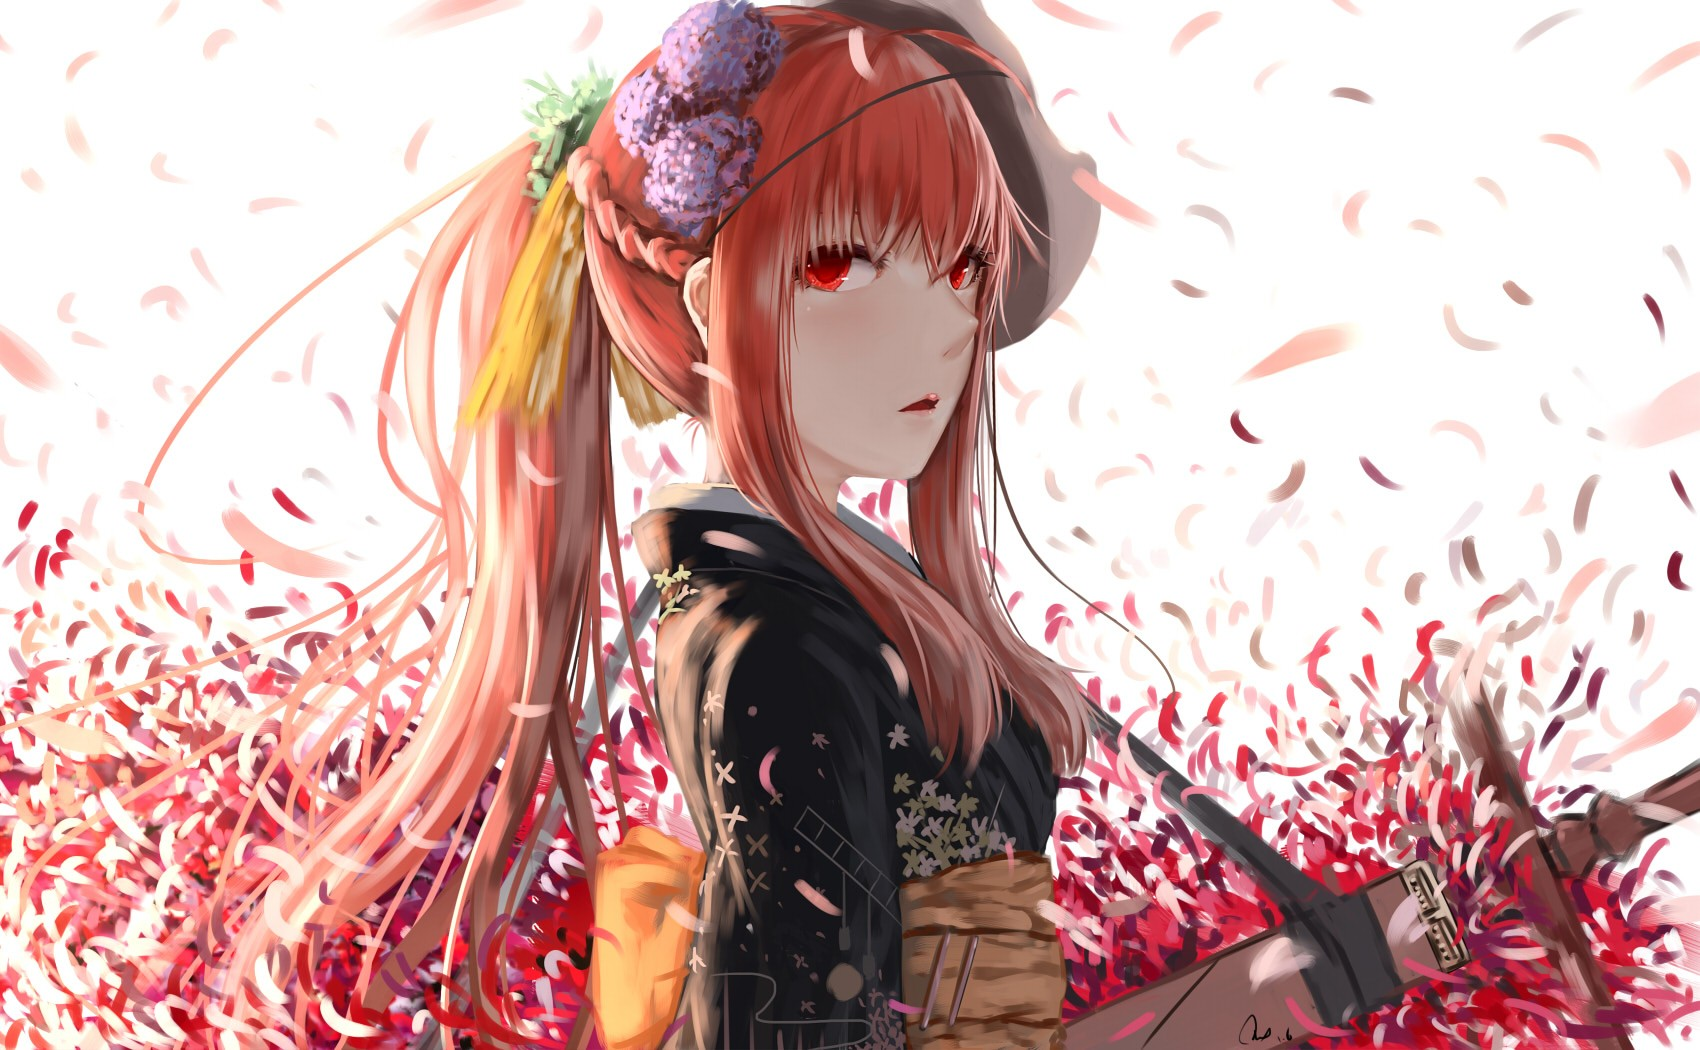 Kitsune Girl In Kimono Wallpaper Wallpaper Anime Girls Weapon Mask Sword Petals